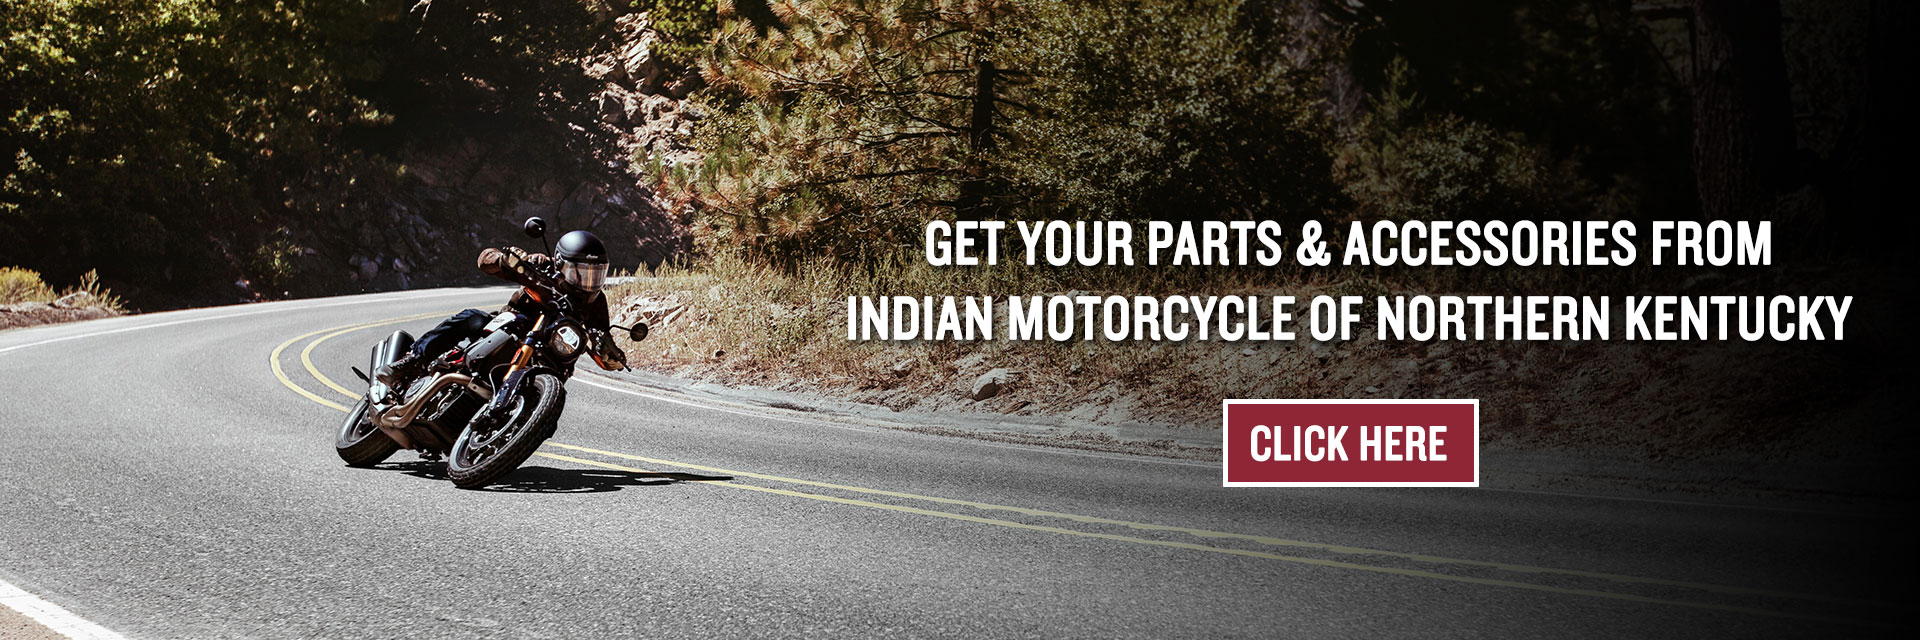 Get your parts & accessories at Indian Motorcycle of Northern Kentucky